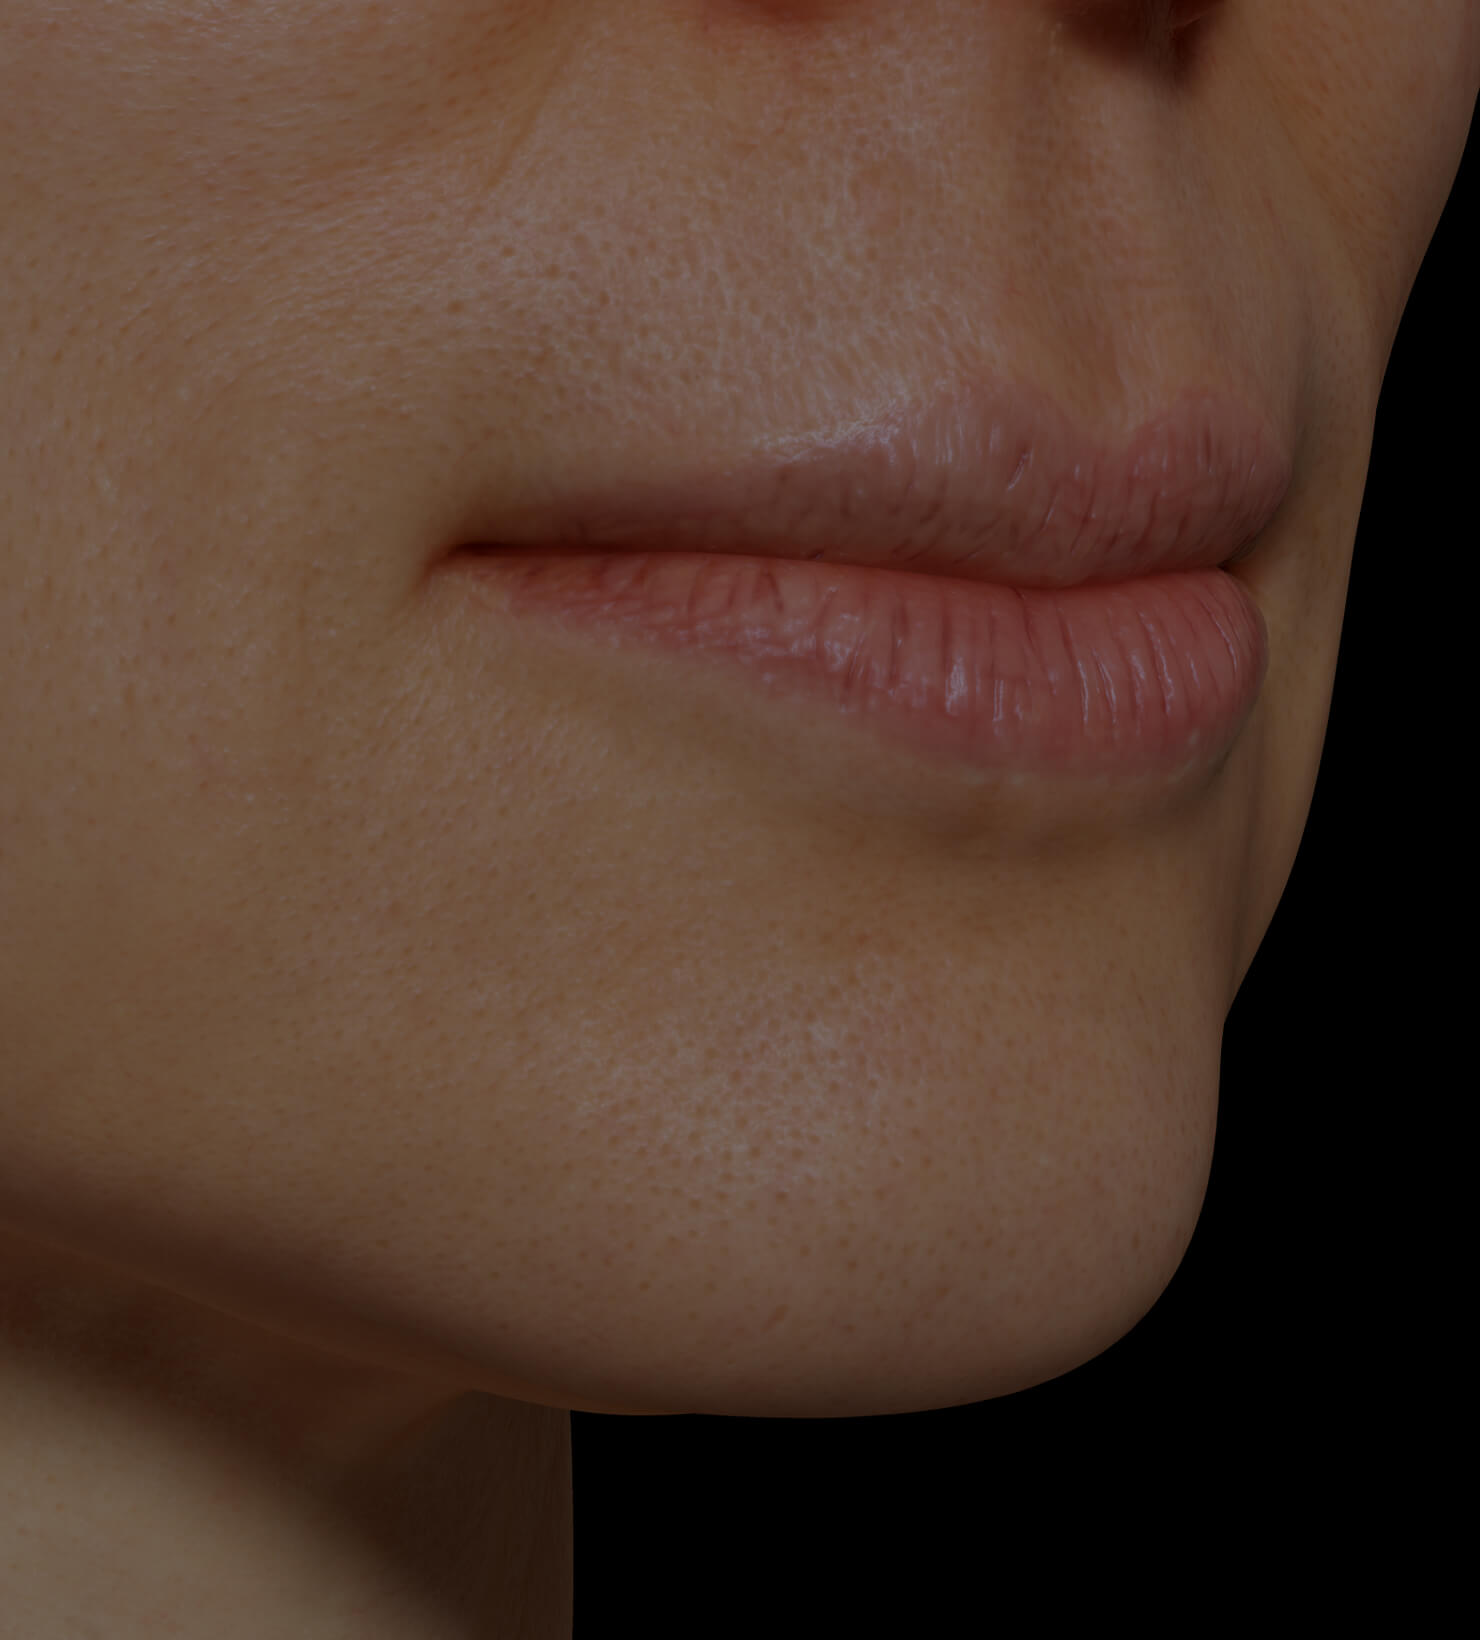 Clinique Chloé female patient with dry lips getting treated with mesotherapy for lip hydration